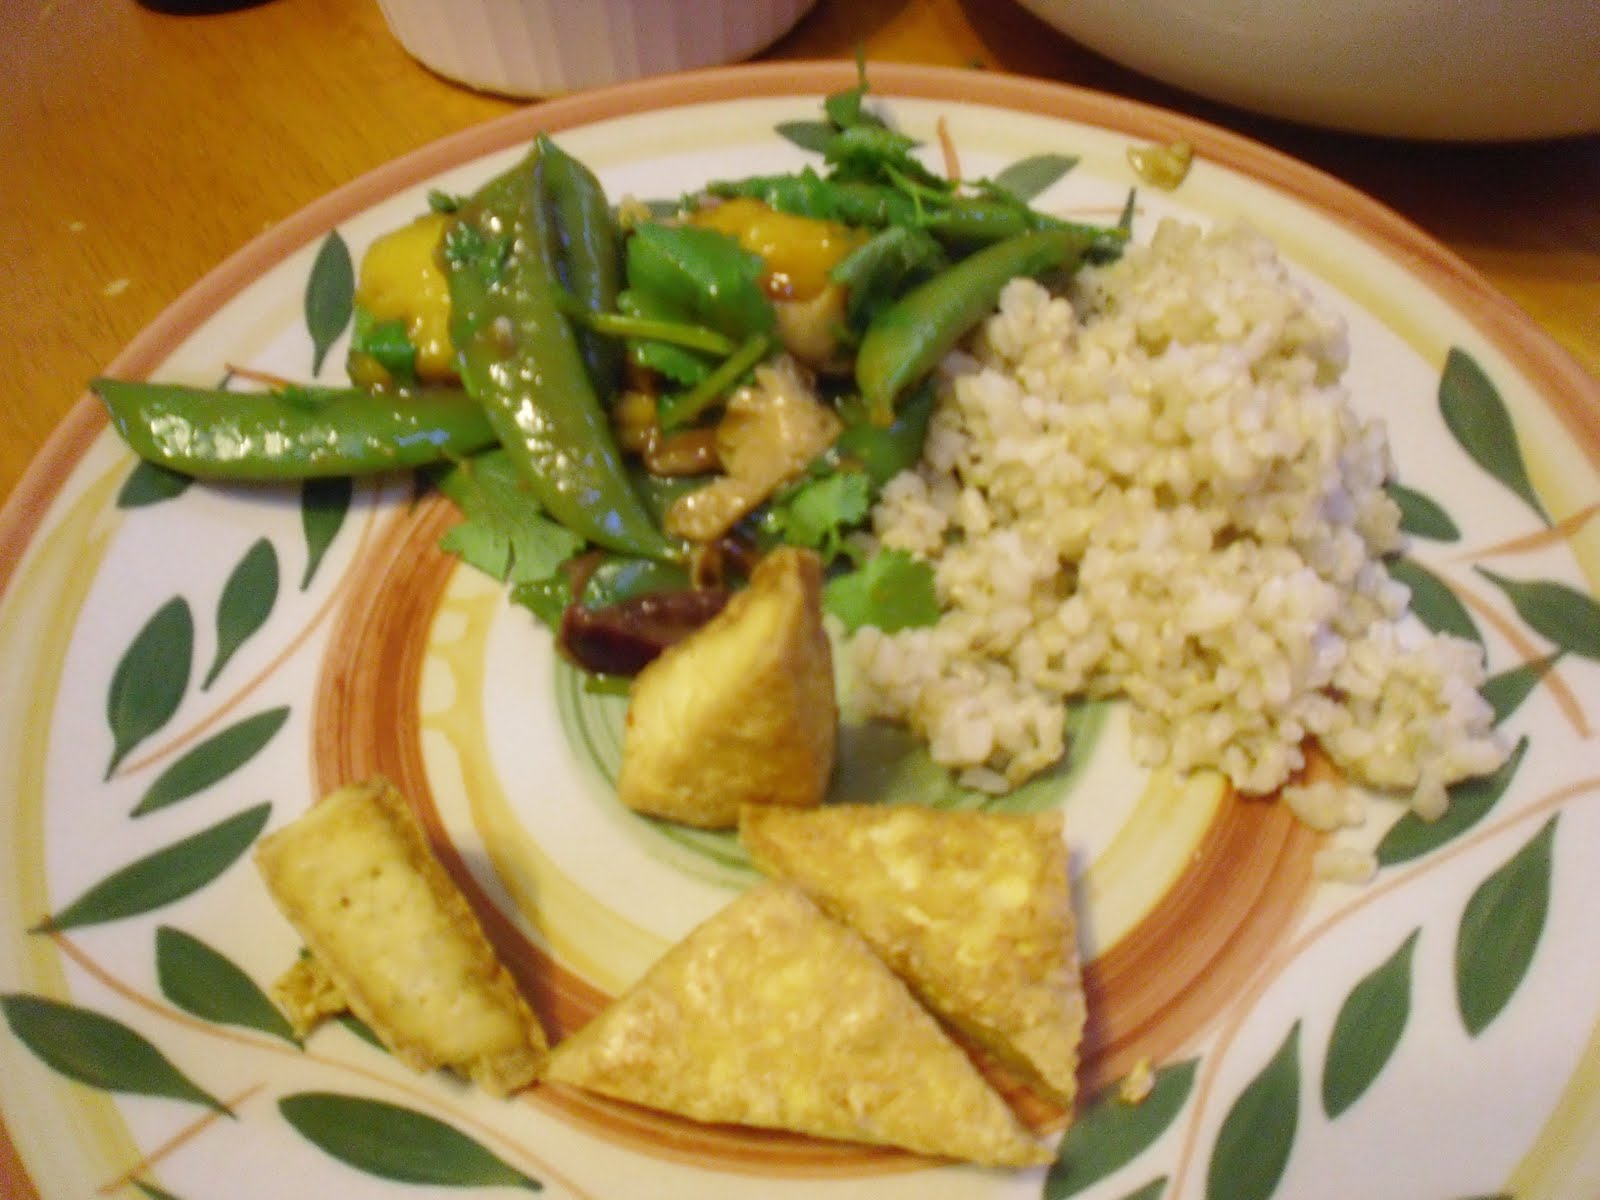 ... Baked Tofu with Peanut Dipping Sauce and Savory Mango Vegetables